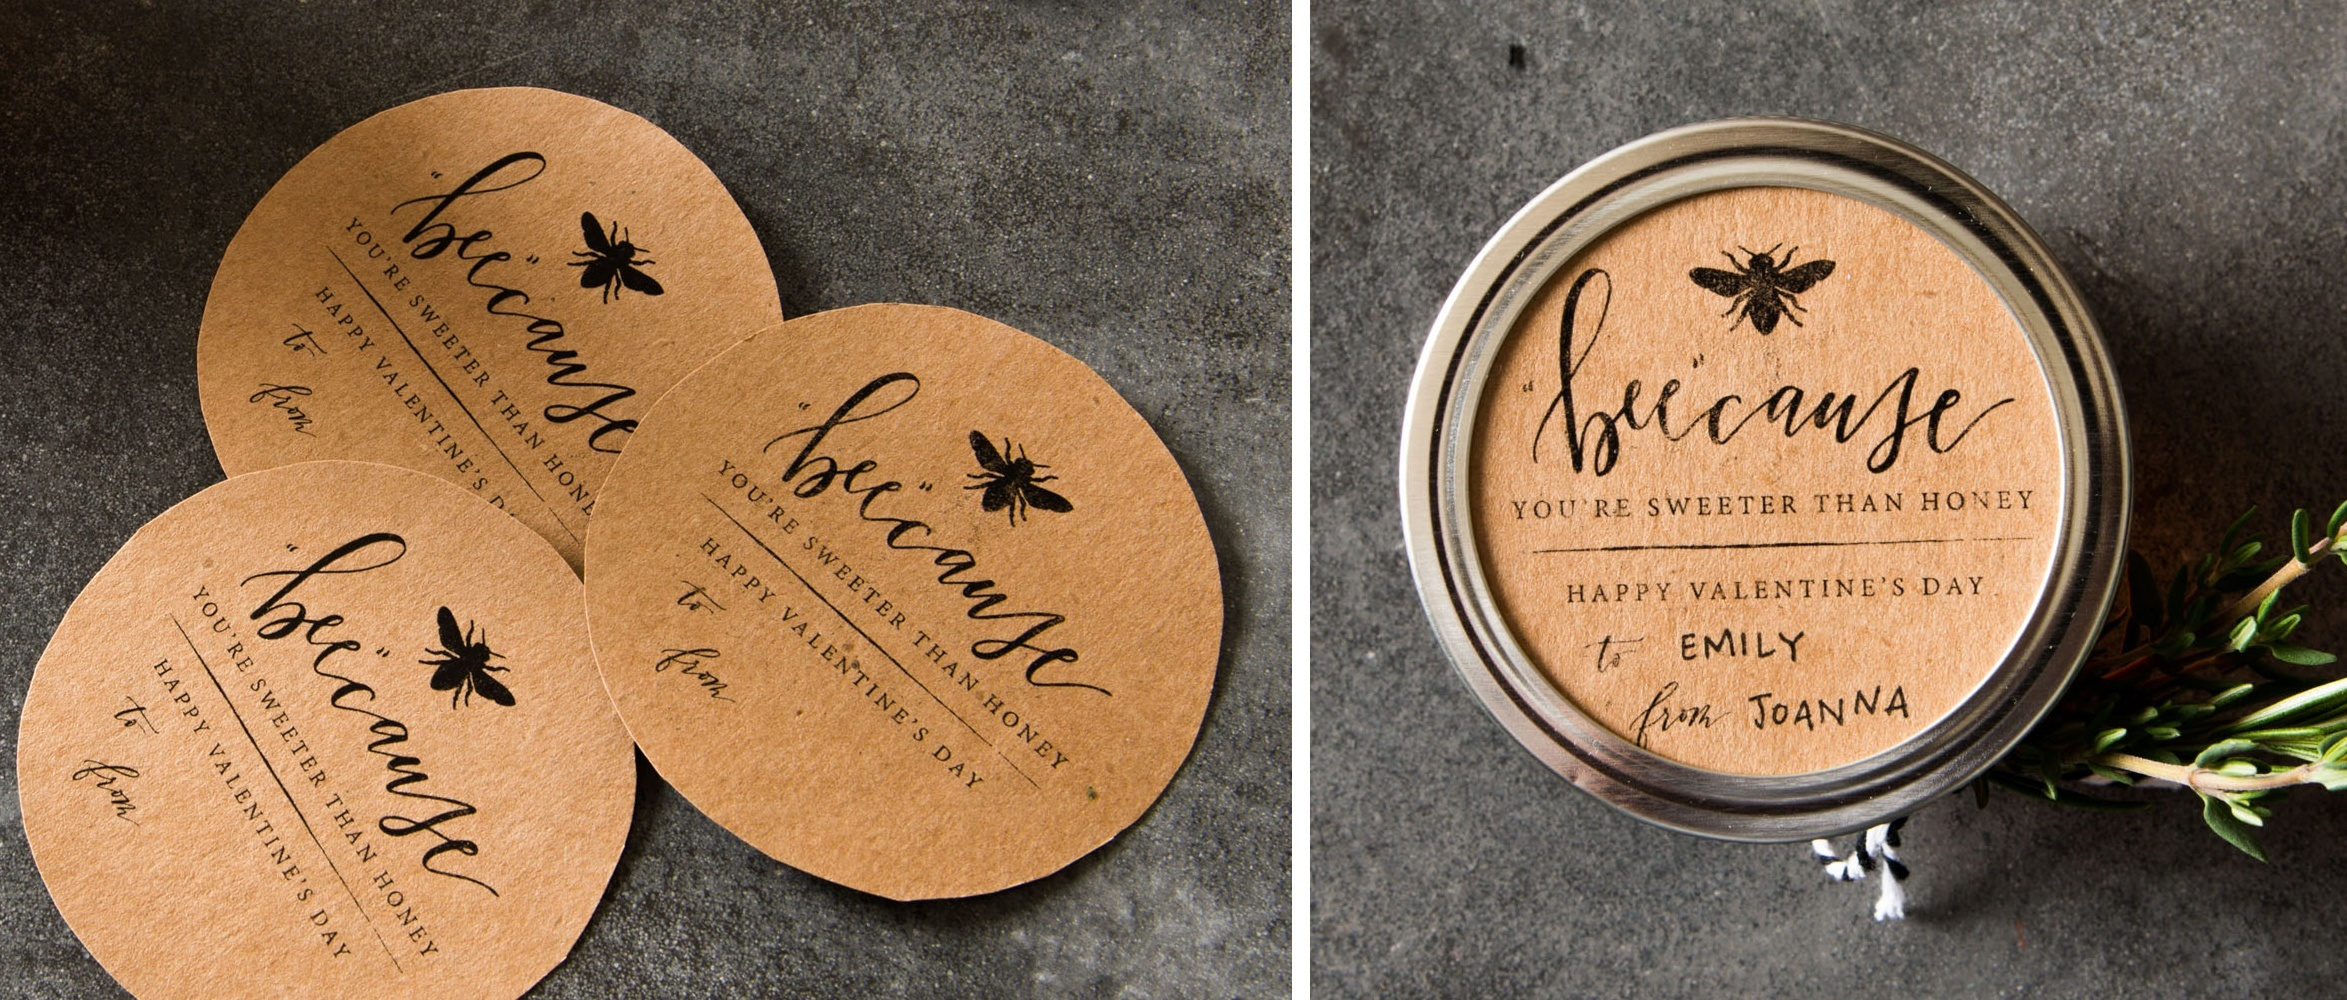 picture about Honey Jar Labels Printable identify Do-it-yourself Honey Jar Valentines At Dwelling: A Weblog as a result of Joanna Gaines